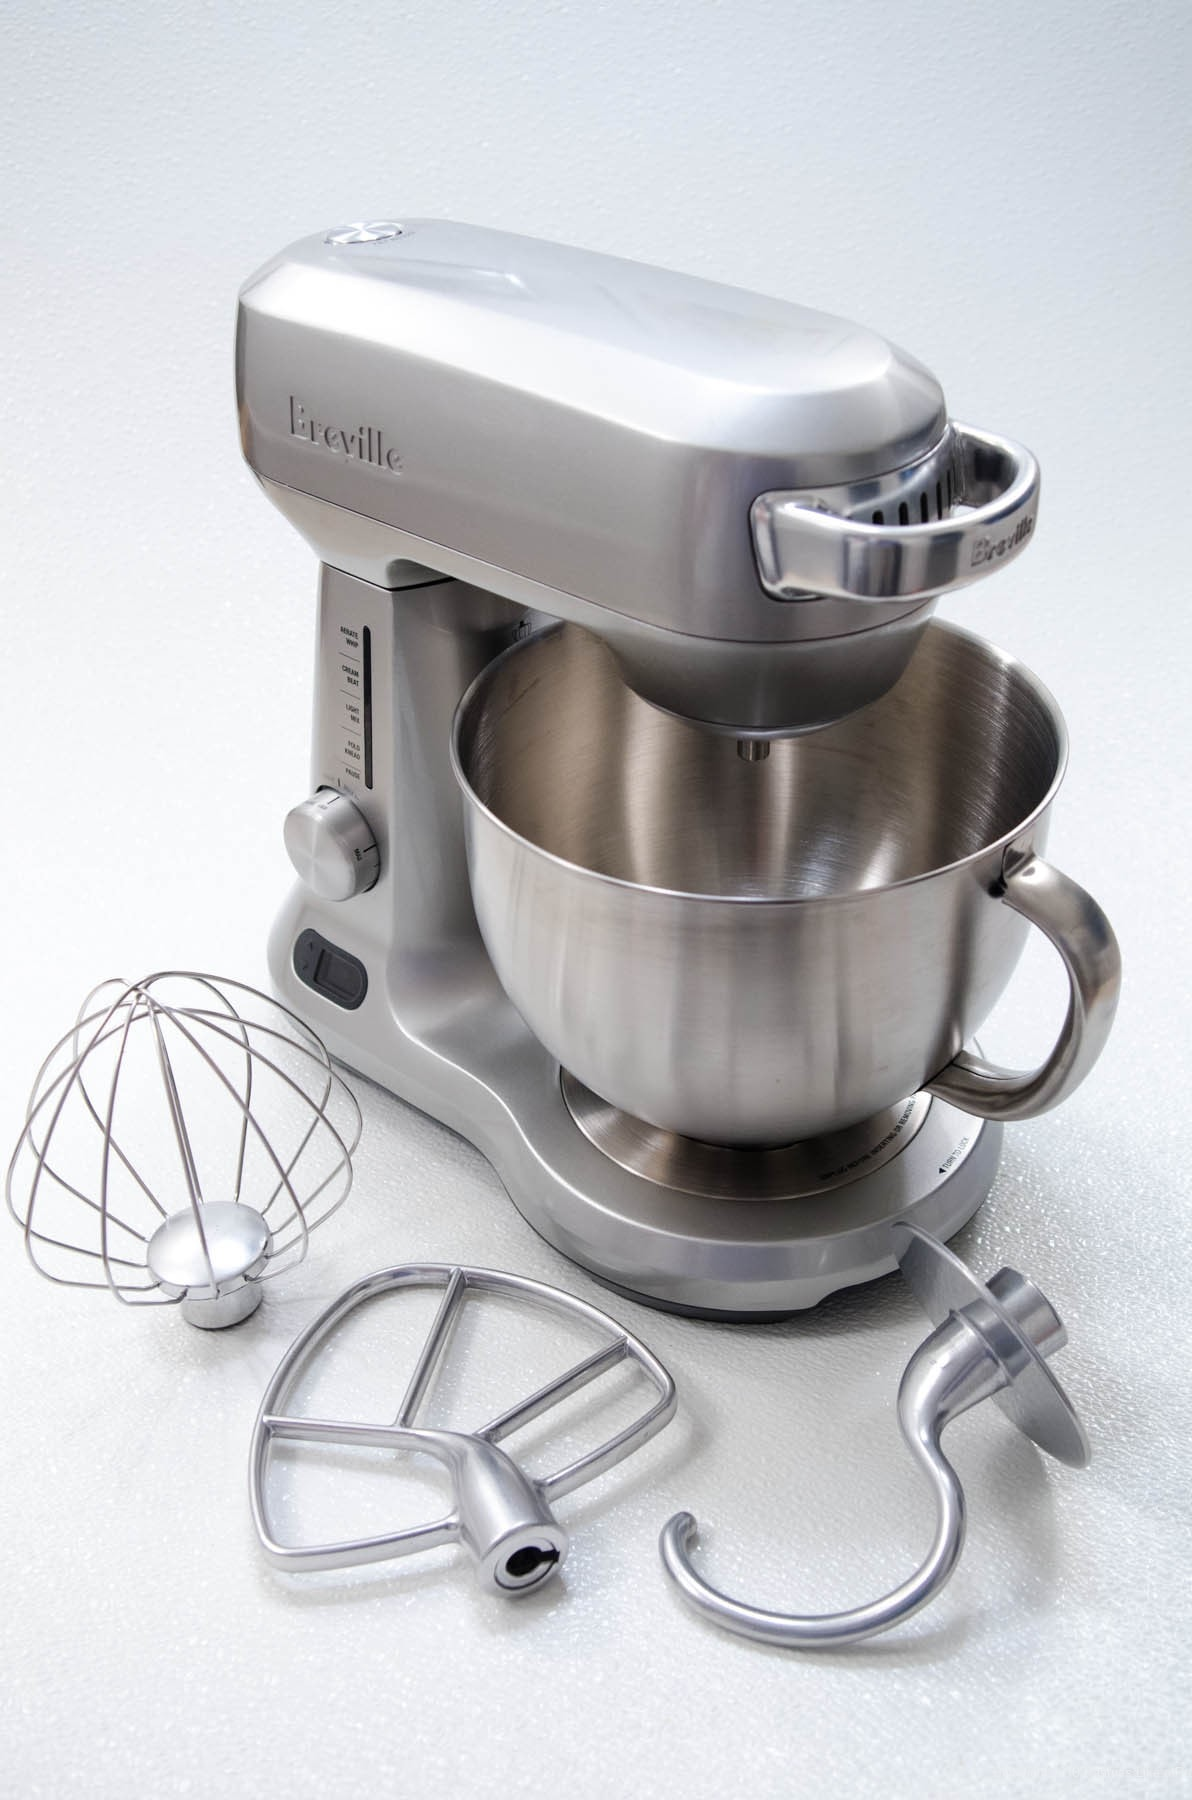 Just Like Home Toy Stand Mixer : Breville mixer vs kitchenaid pastries like a pro